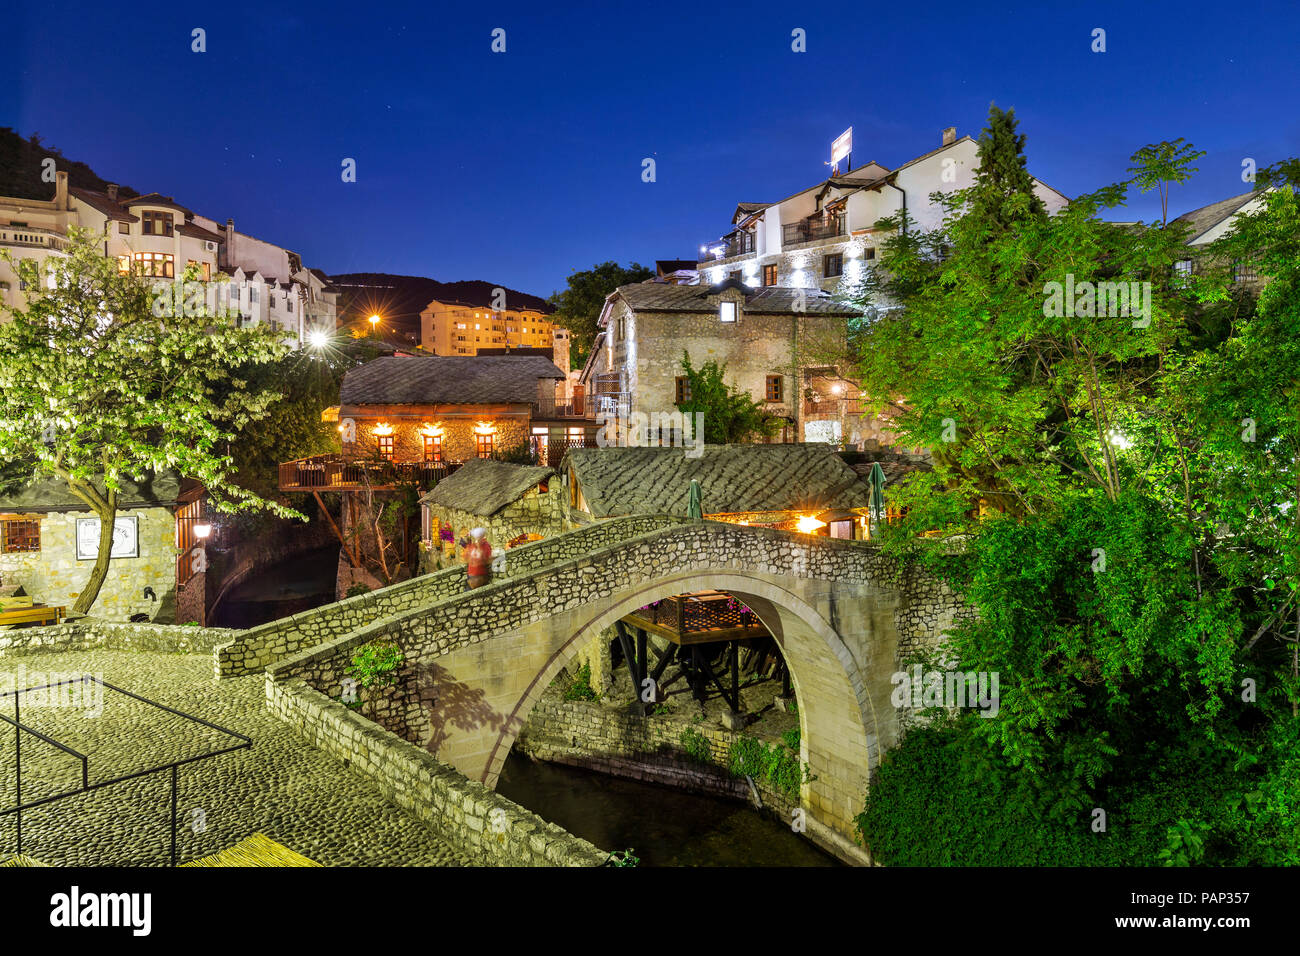 Bosnia-Herzegovina, Mostar, old town, bridge at blue hour - Stock Image